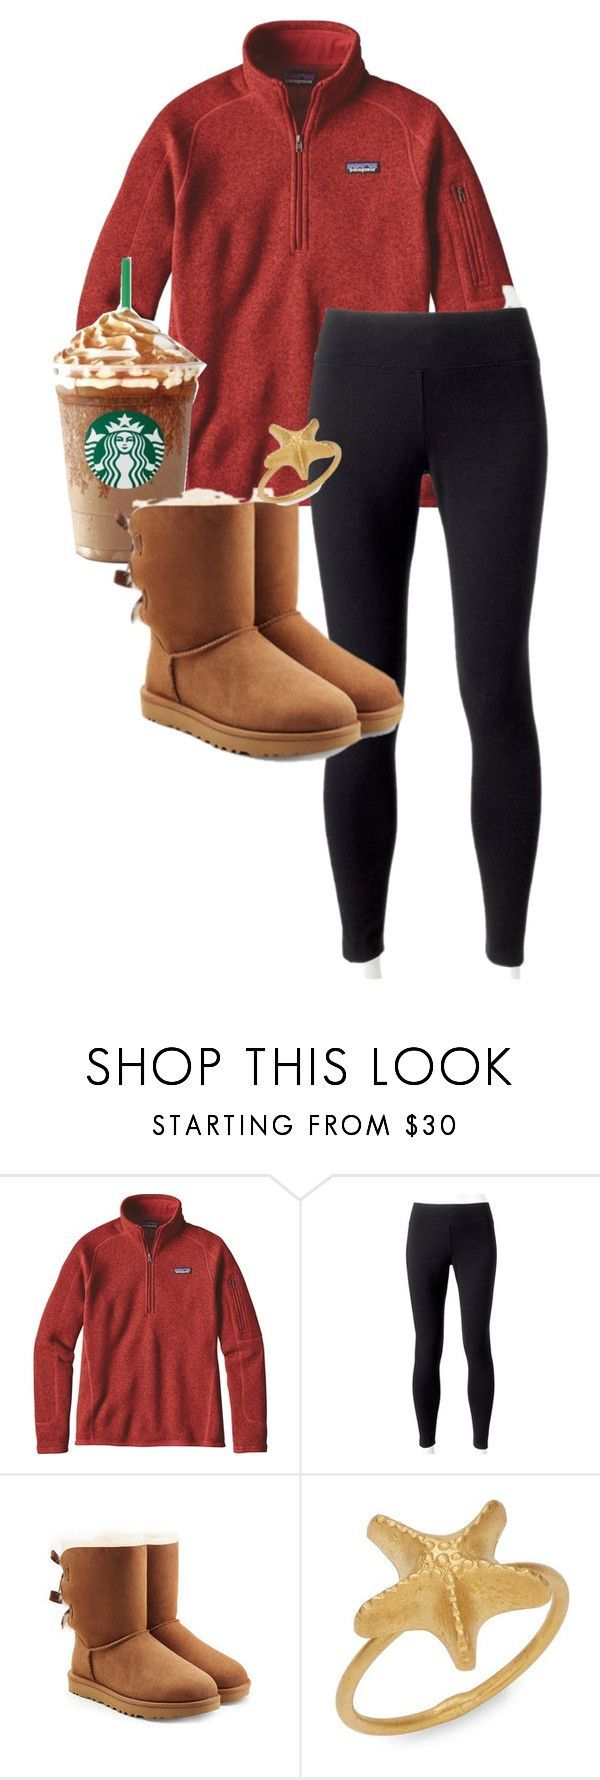 Winter Road Trip by alandra333 on Polyvore featuring Patagonia, Jockey, UGG and Valentino